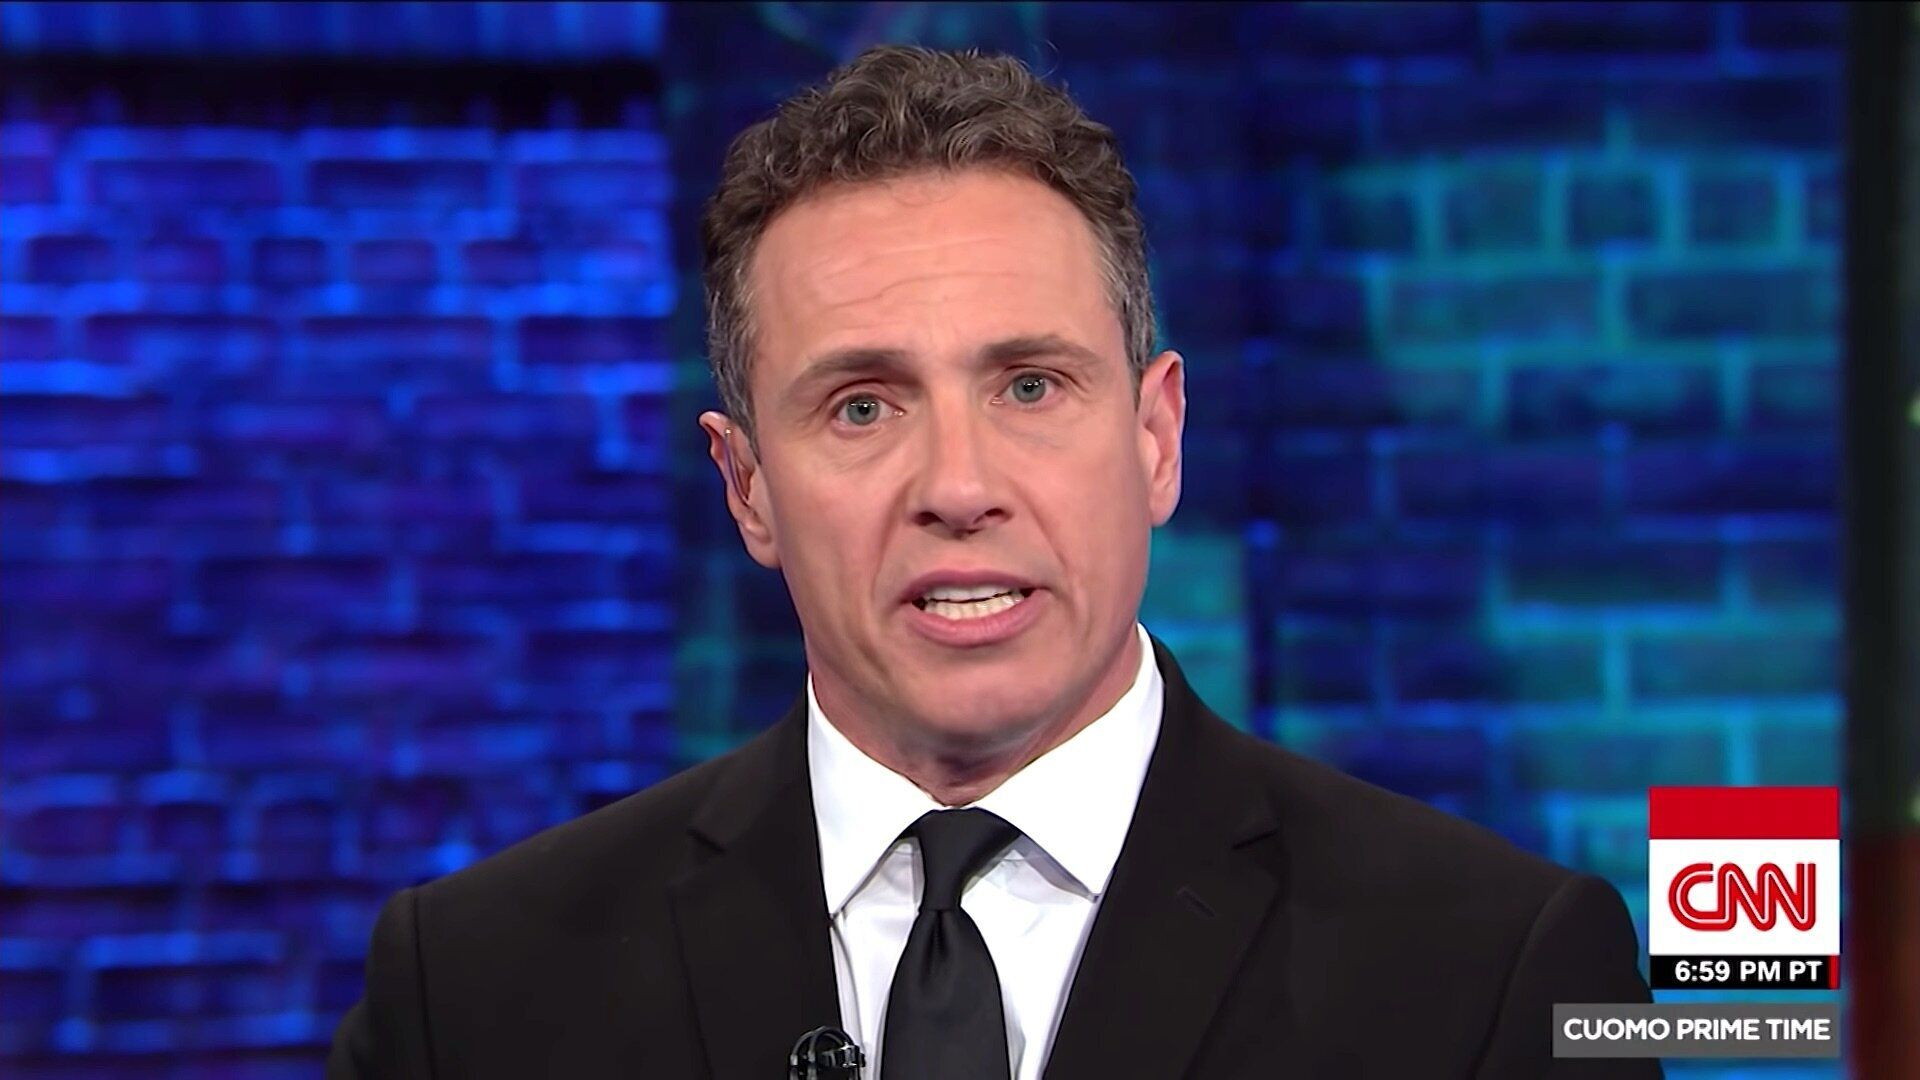 Chris Cuomo Gives 2020 Democrats A Way To Unite Against Trump's Biggest Weakness